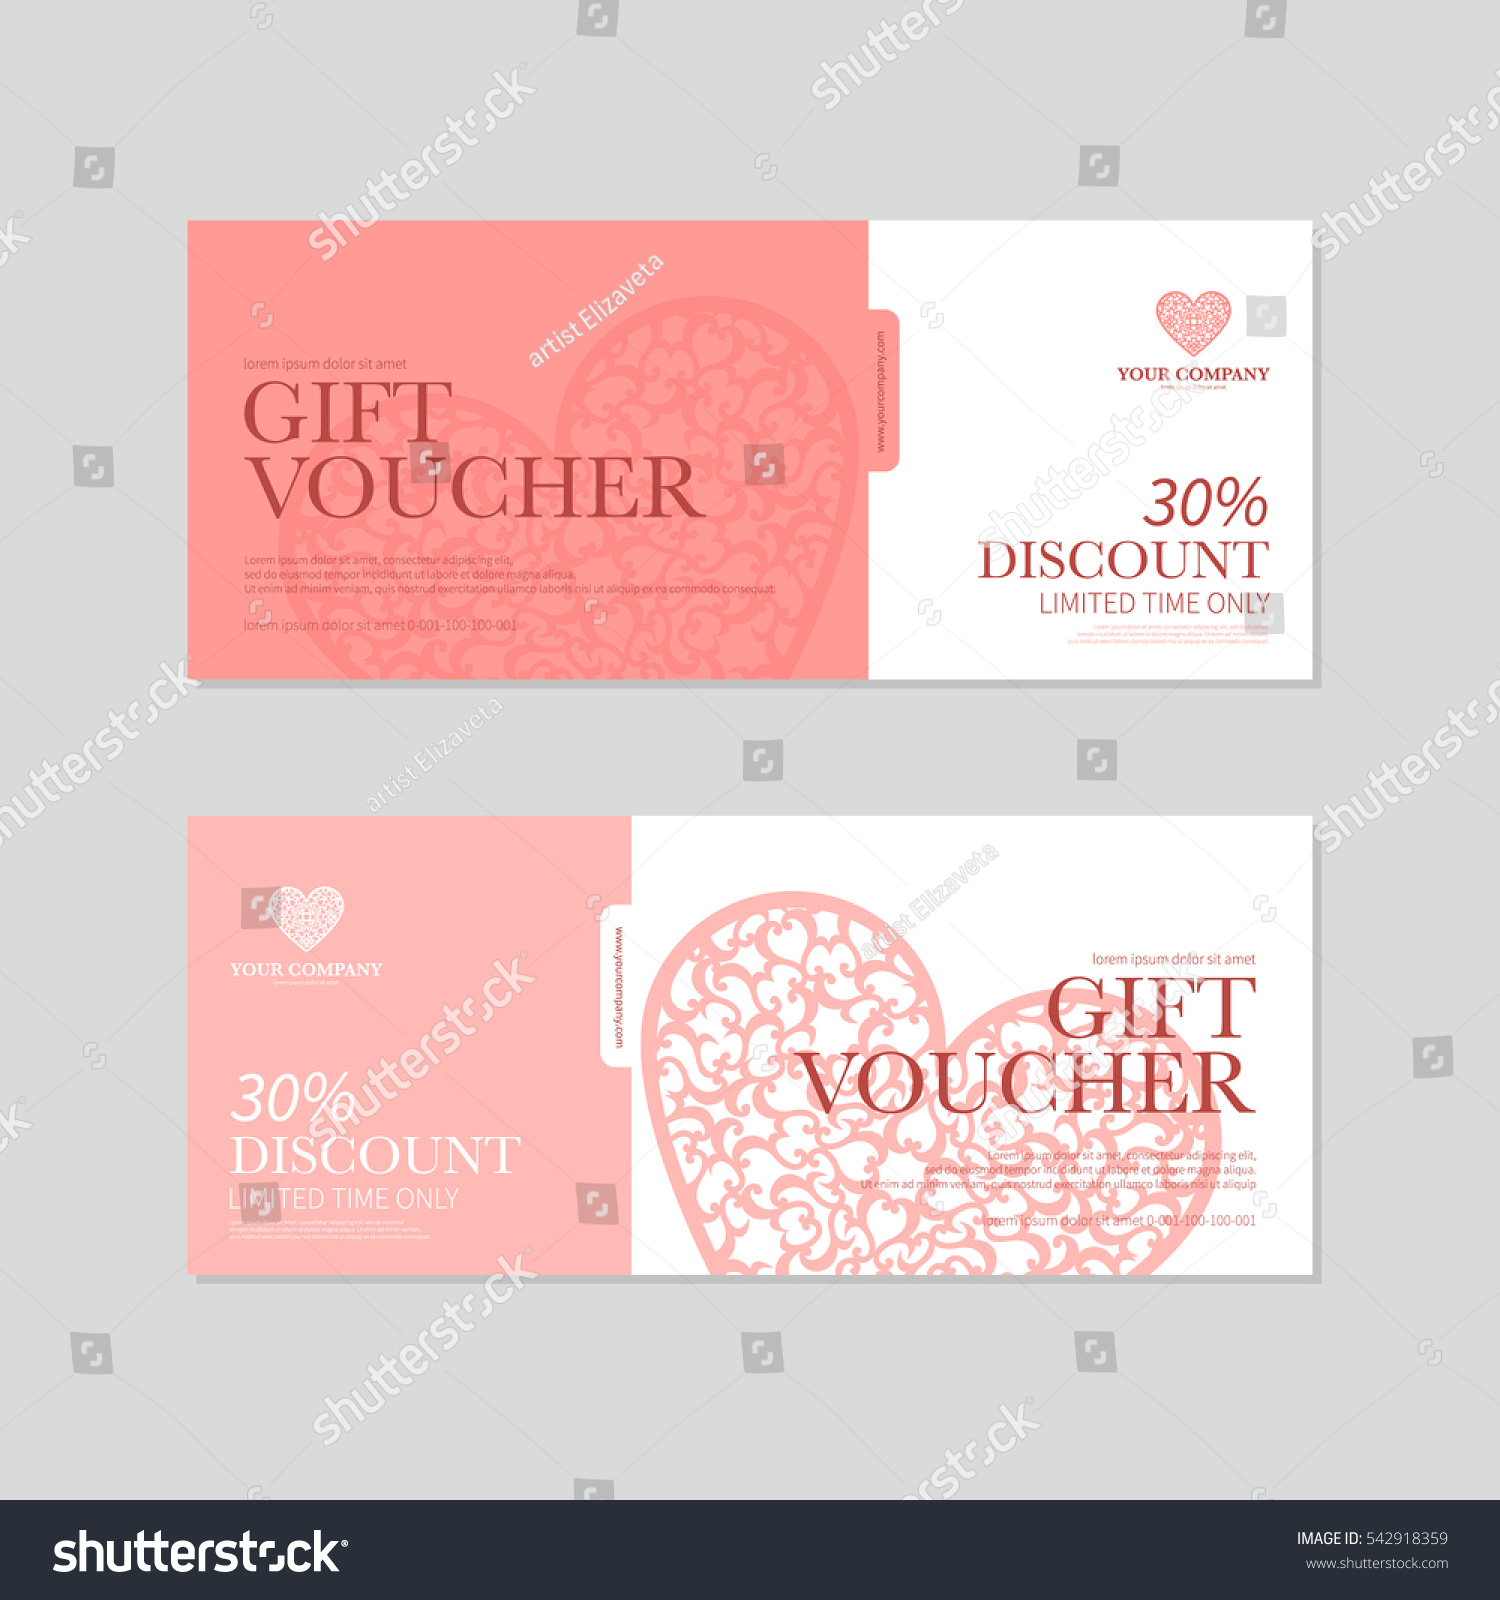 Valentines day gift coupon gift voucher stock vector 542918359 valentines day gift coupon gift voucher template with red hearts valentines day discount voucher 1betcityfo Image collections